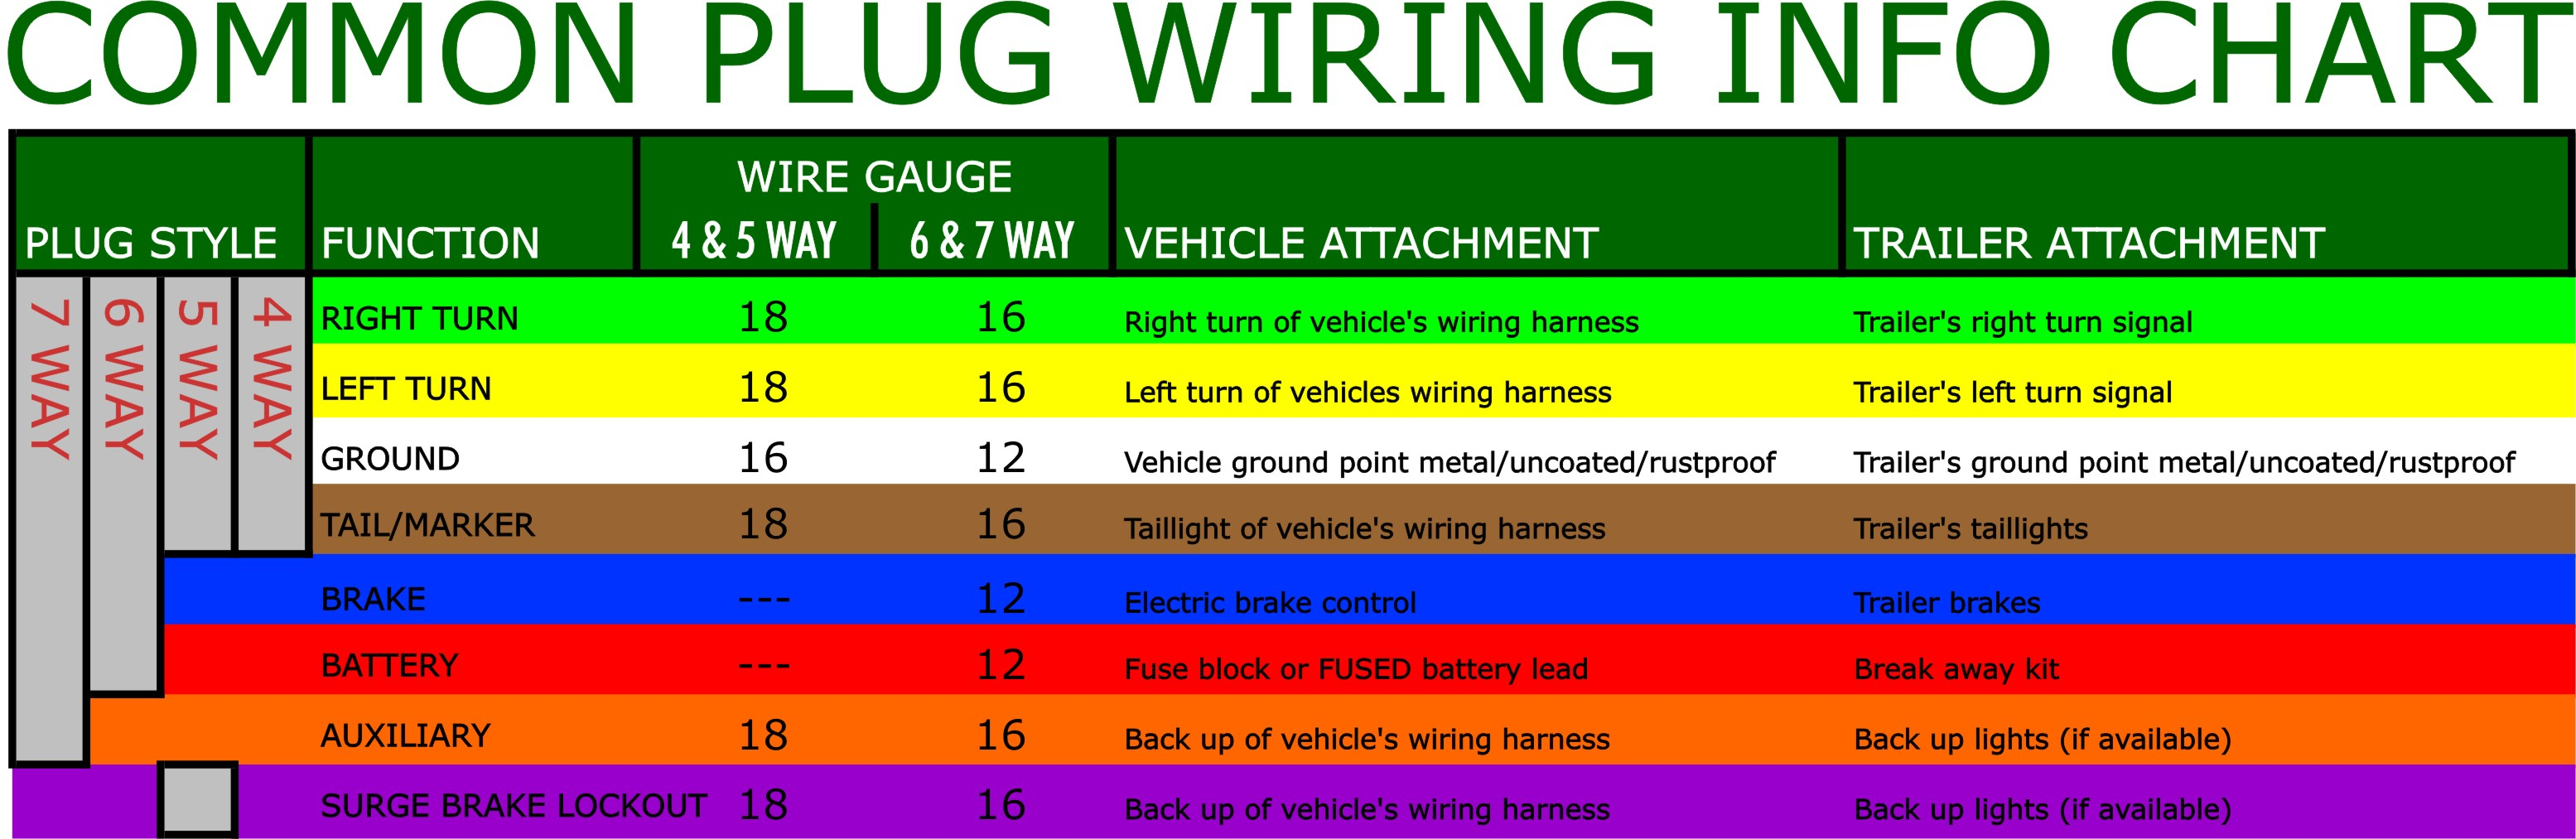 What Are The Most Common Trailer Plugs? - 6 Way Plug Wiring Diagram